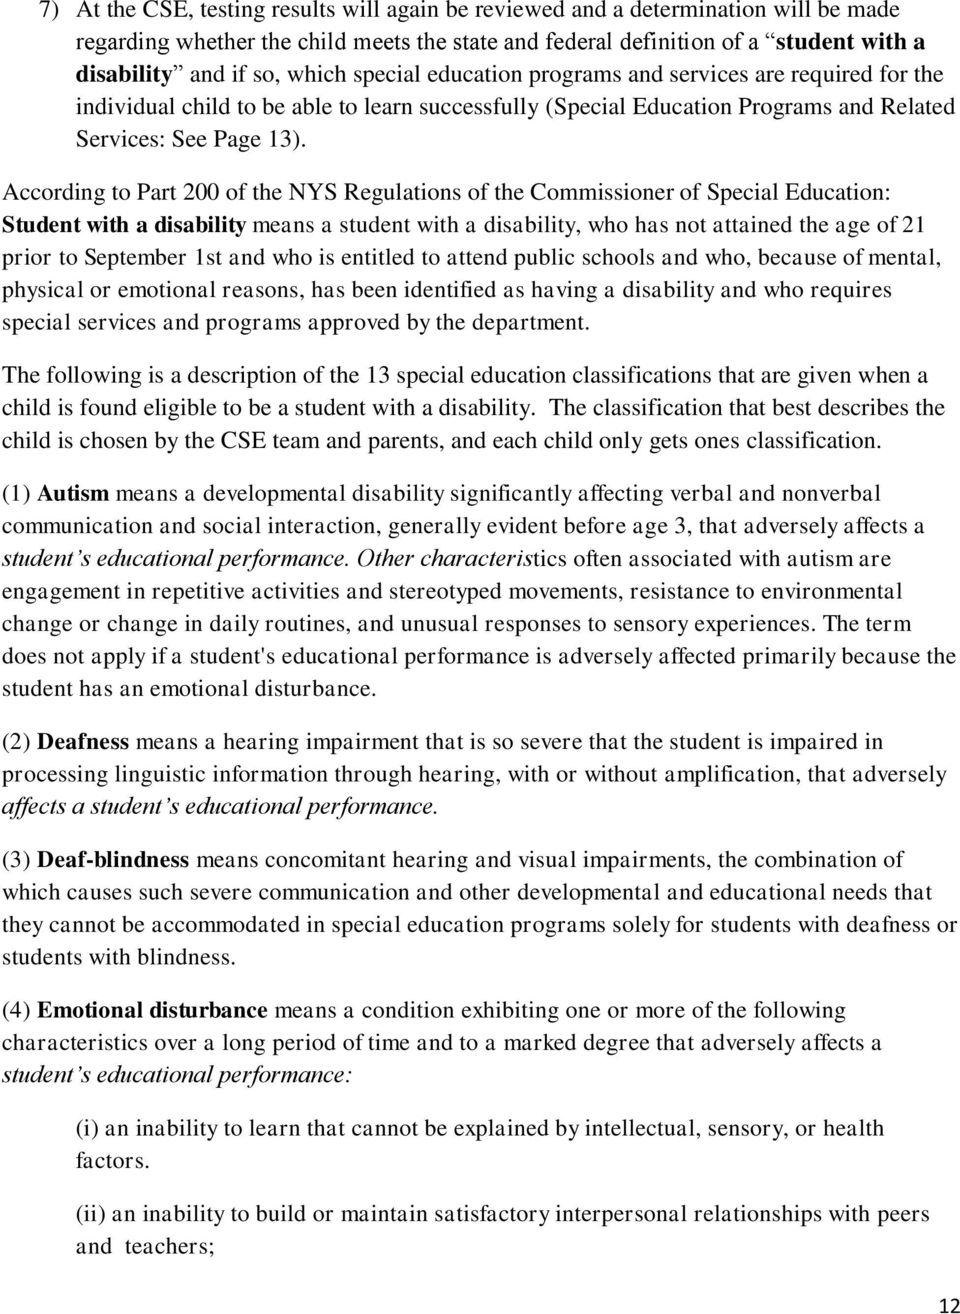 explain the relationship between disability and special educational needs